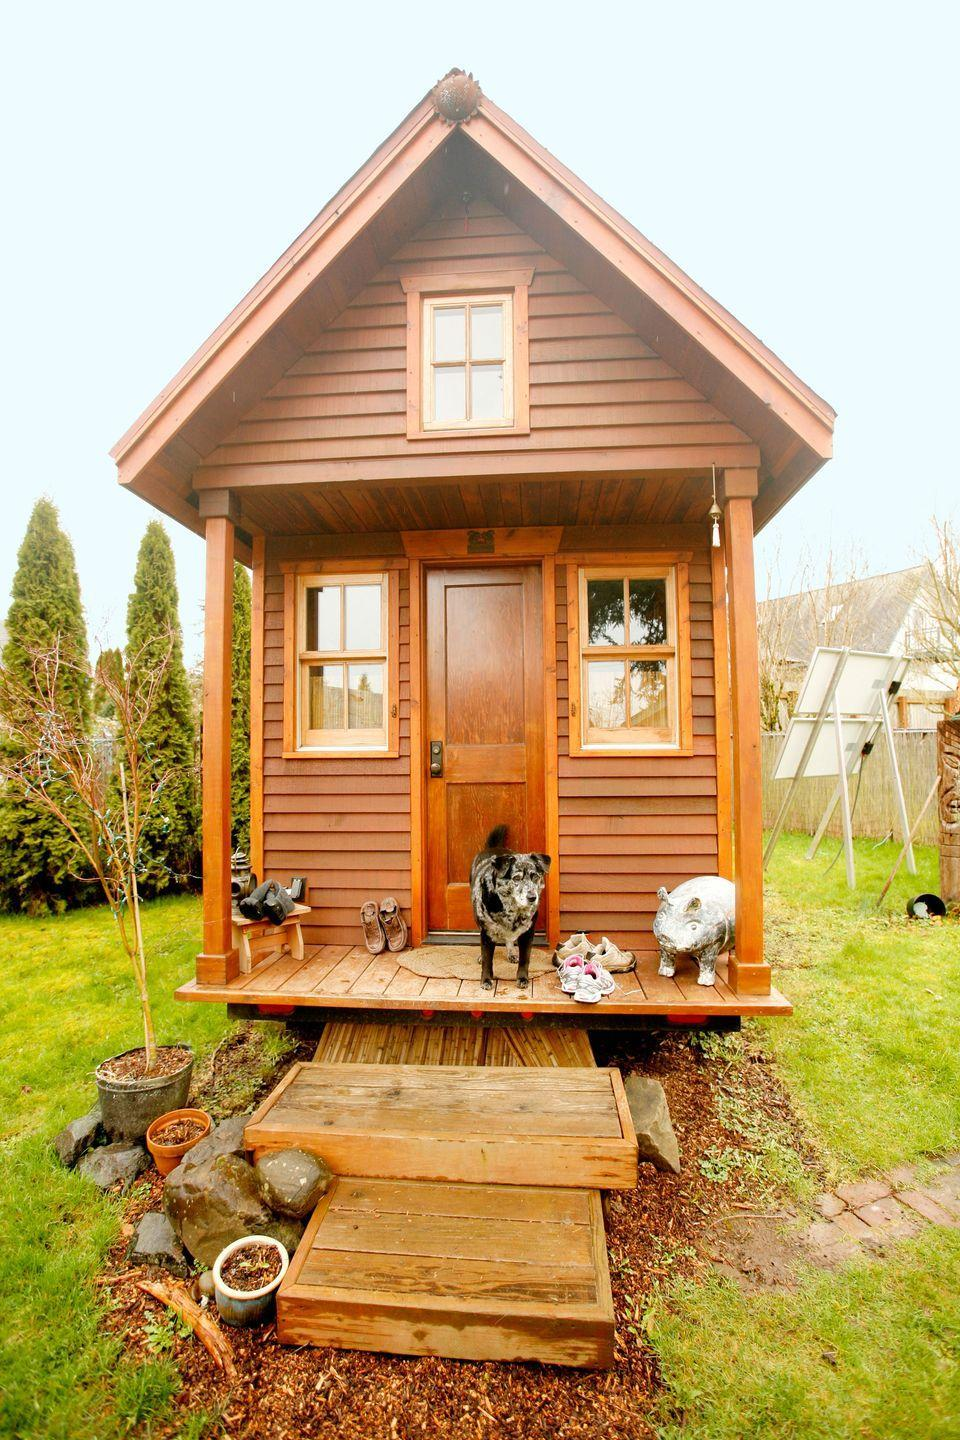 """<p>This is the Olympia, Washington home of tiny house pioneer Dee Williams, author of <em><a href=""""https://www.amazon.com/The-Big-Tiny-Built-It-Myself-Memoir/dp/0399166173?tag=syn-yahoo-20&ascsubtag=%5Bartid%7C10050.g.1887%5Bsrc%7Cyahoo-us"""" rel=""""nofollow noopener"""" target=""""_blank"""" data-ylk=""""slk:The Big Tiny"""" class=""""link rapid-noclick-resp"""">The Big Tiny</a>, </em>a memoir that details her decision to downsize to an 84-square-foot house that she built from the ground up after a near-death experience. Constructed atop a metal truck trailer, the super-small pine-and-cedar bungalow houses a kitchen counter with a propane one-burner, a sleeping loft, solar-powered lights, a composting toilet, and a sink (but no running water). To help others realize their tiny house dreams, Dee also founded <a href=""""http://padtinyhouses.com/"""" rel=""""nofollow noopener"""" target=""""_blank"""" data-ylk=""""slk:Portland Alternative Dwellings"""" class=""""link rapid-noclick-resp"""">Portland Alternative Dwellings</a>, a tiny house education, resource, and consulting company.<br></p><p><a class=""""link rapid-noclick-resp"""" href=""""https://www.amazon.com/The-Big-Tiny-Built-It-Myself-Memoir/dp/0399166173?tag=syn-yahoo-20&ascsubtag=%5Bartid%7C10050.g.1887%5Bsrc%7Cyahoo-us"""" rel=""""nofollow noopener"""" target=""""_blank"""" data-ylk=""""slk:SHOP NOW"""">SHOP NOW</a> <a class=""""link rapid-noclick-resp"""" href=""""http://www.nytimes.com/2014/04/17/garden/square-feet-84-possessions-305.html?_r=1"""" rel=""""nofollow noopener"""" target=""""_blank"""" data-ylk=""""slk:SEE INSIDE"""">SEE INSIDE</a></p>"""